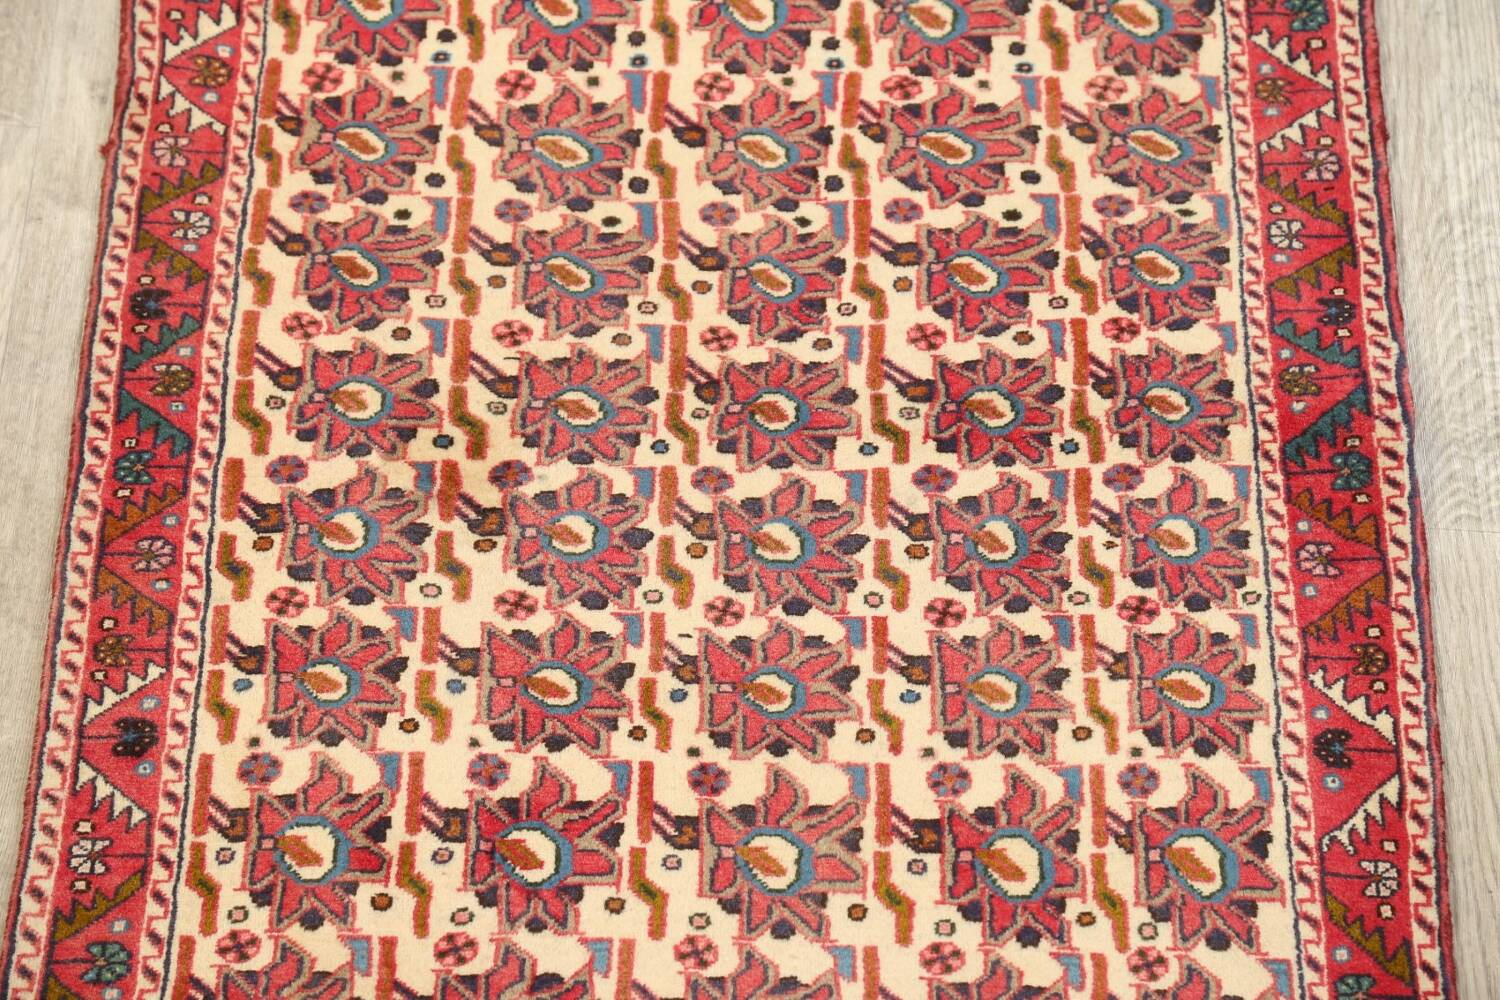 All-Over Geometric Afshar Persian Runner Rug 3x7 image 3